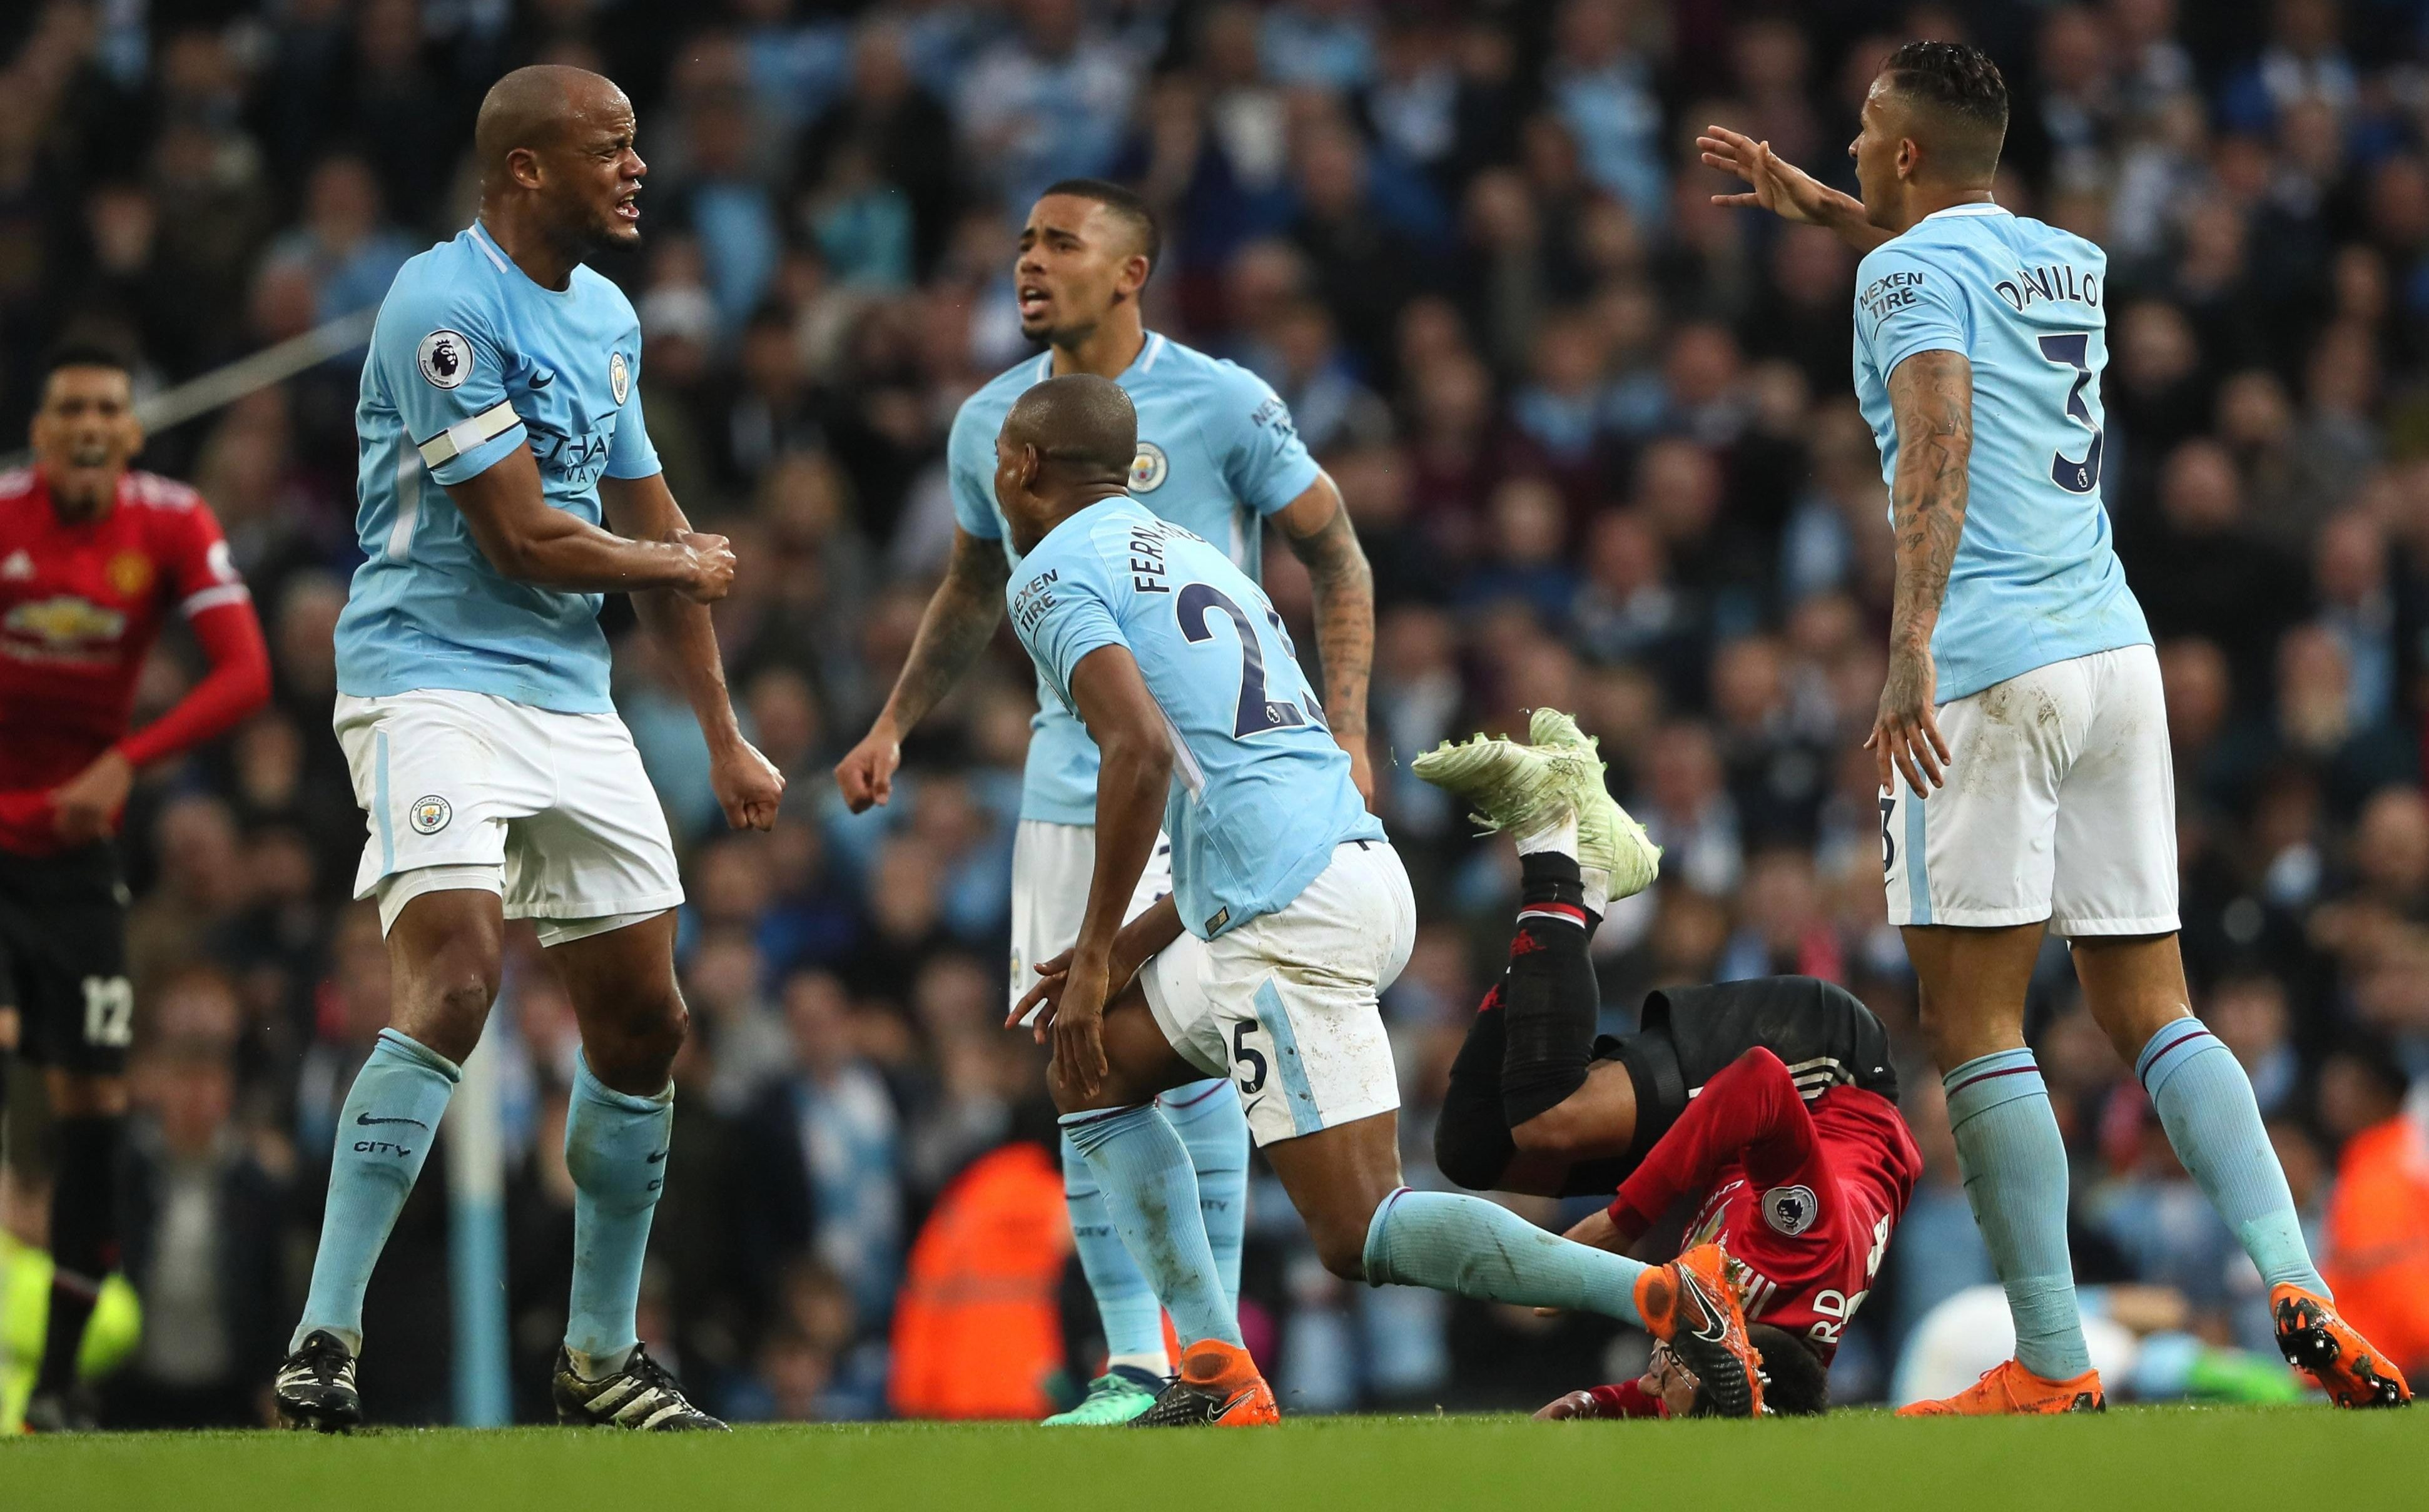 Manchester City's stars conduct an on-field inquest during their defeat to United in April